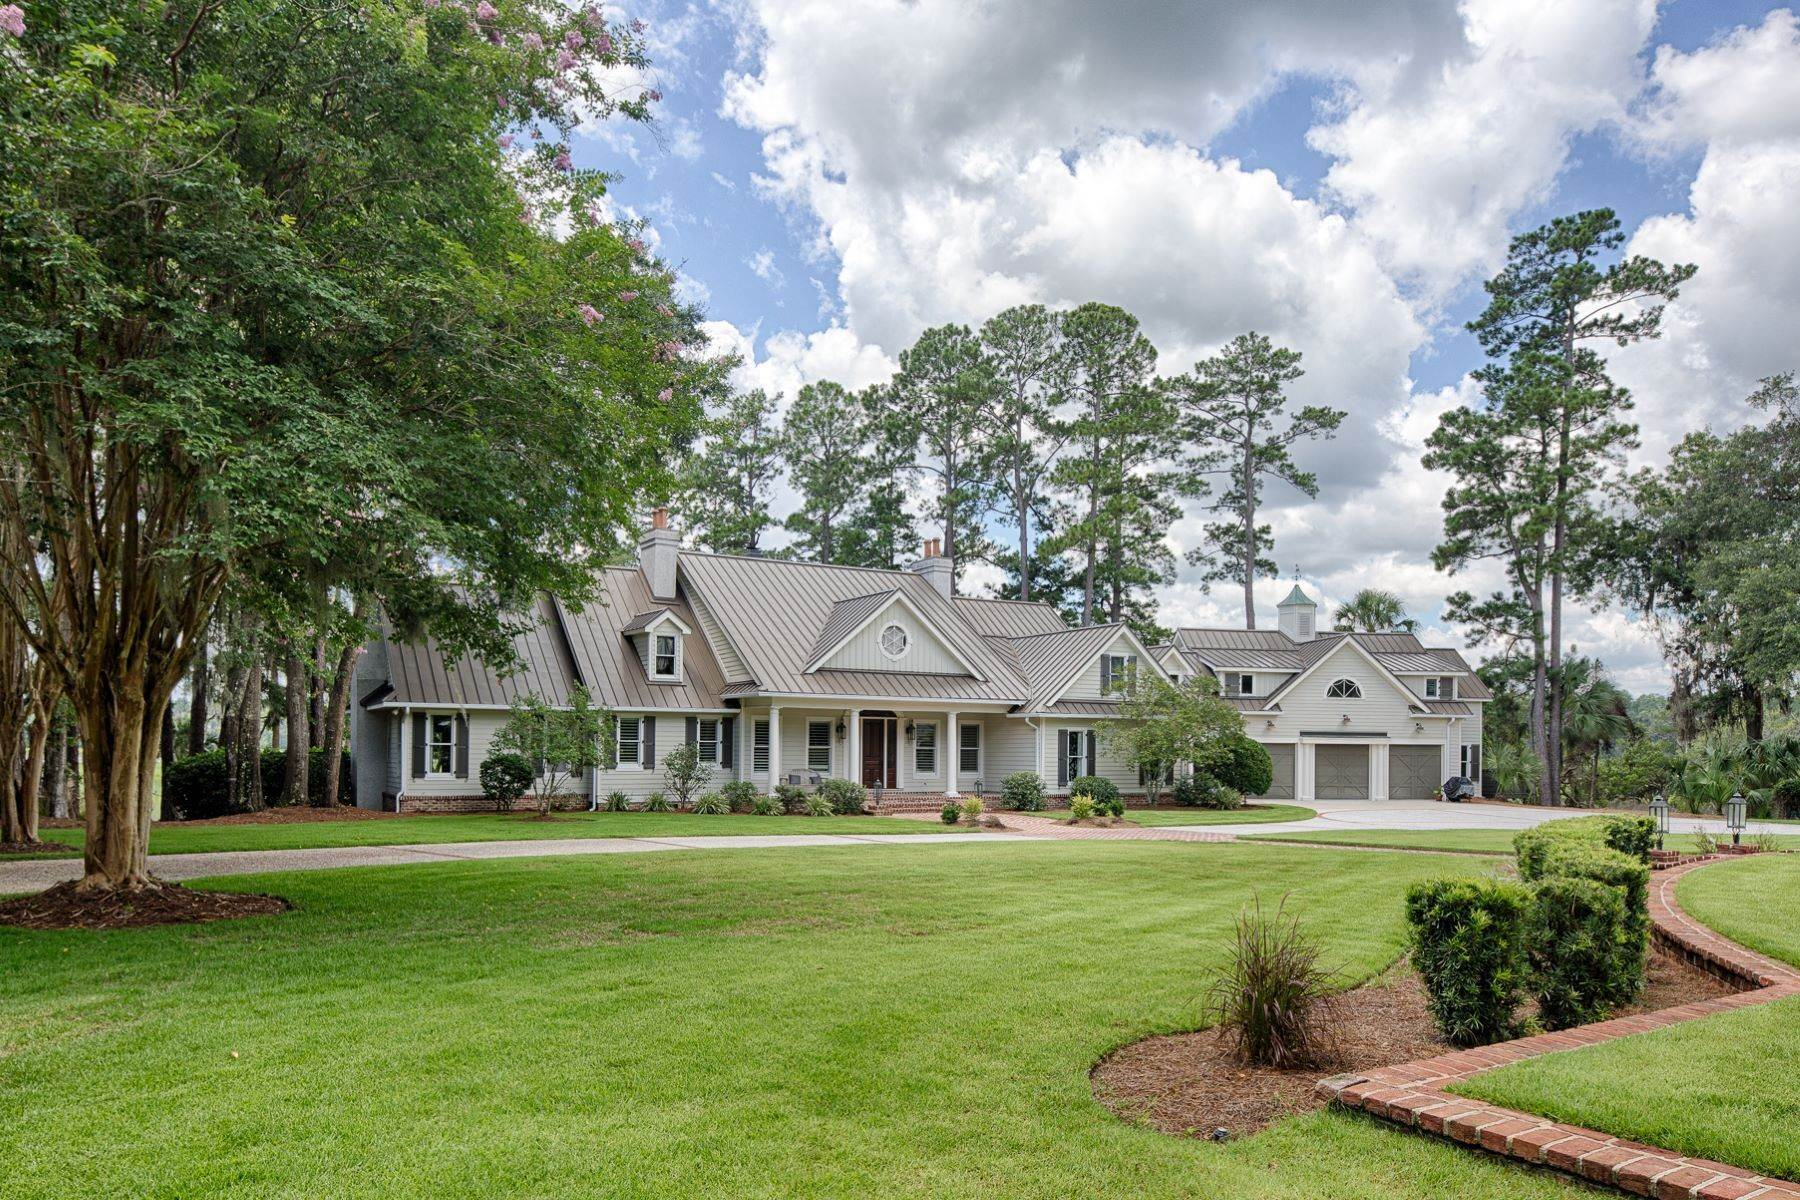 7. Single Family Homes for Sale at 7 Acres in Gascoigne Bluff 155 Gascoigne Bluff Road Bluffton, South Carolina 29910 United States